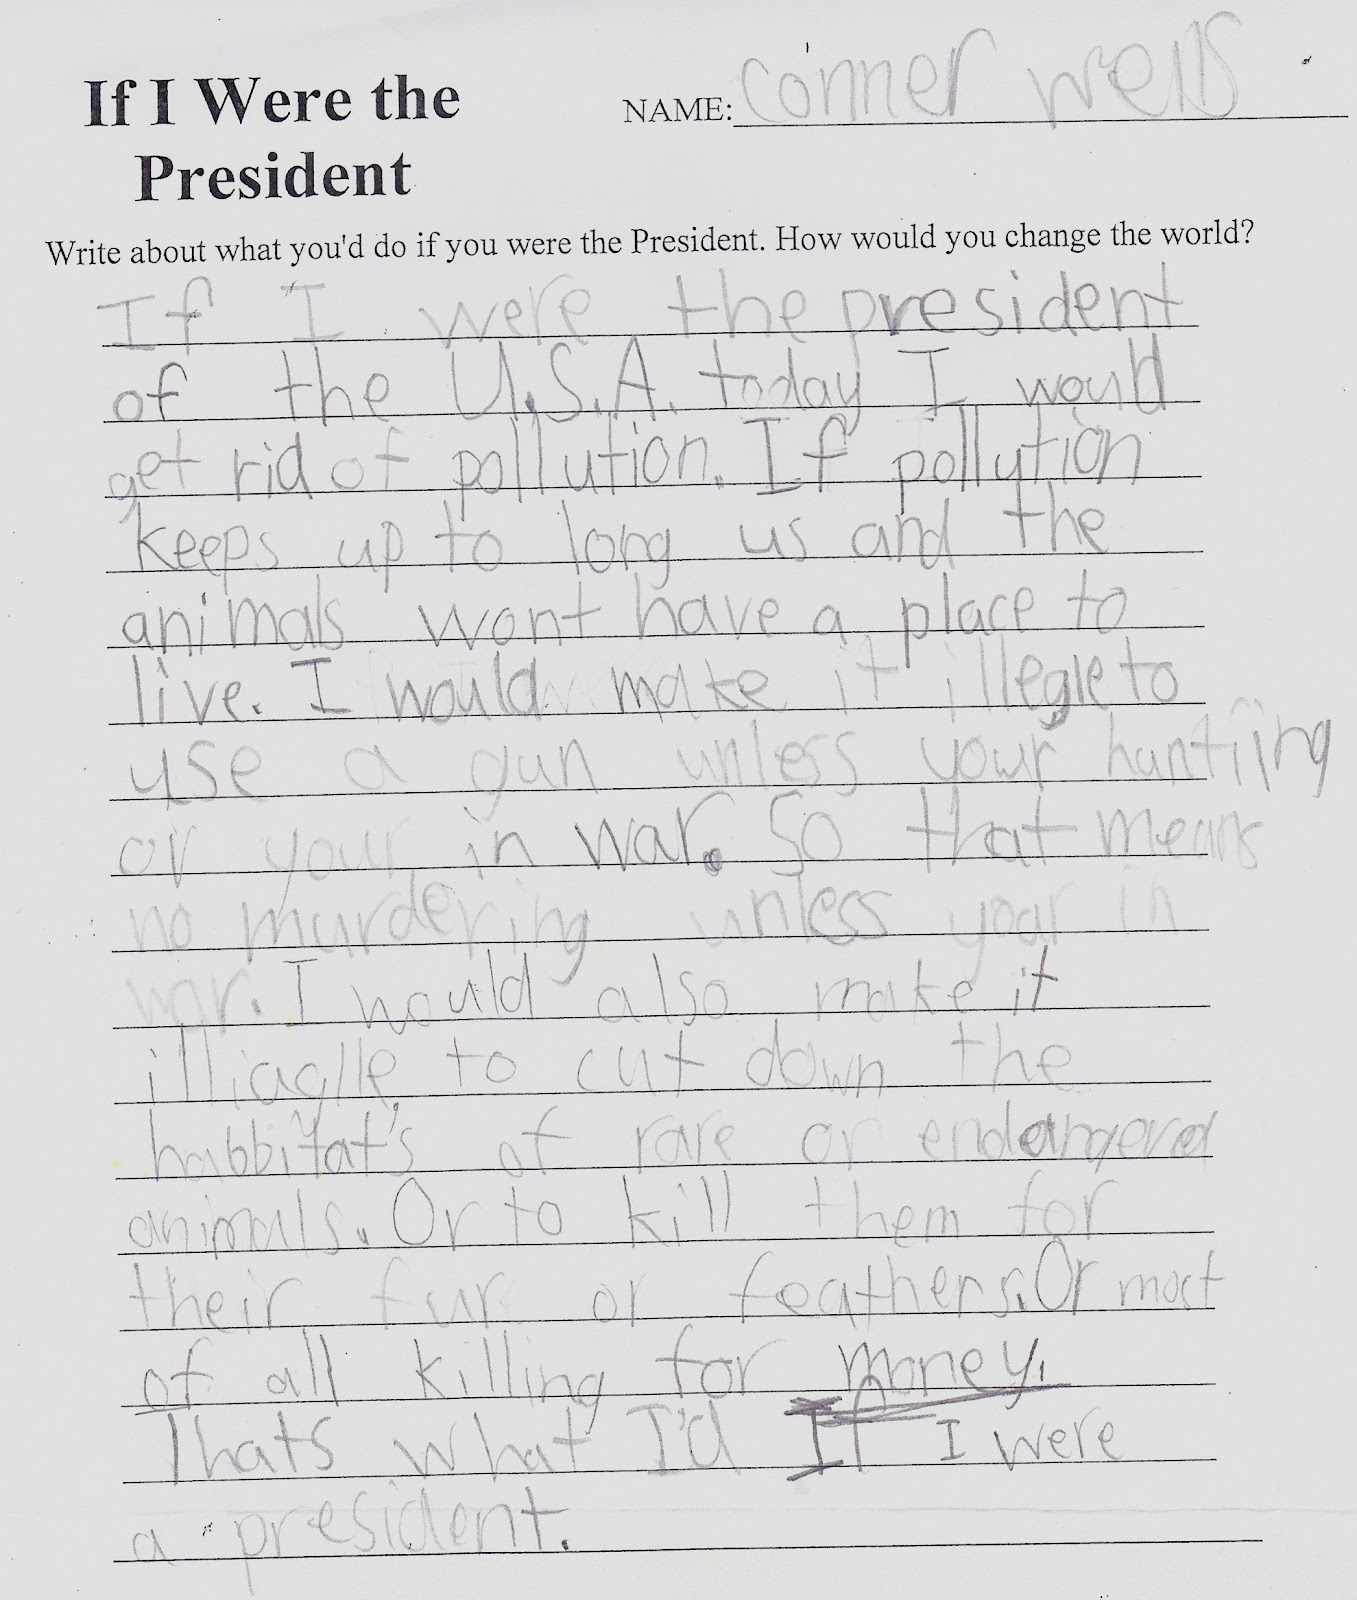 i were president essay if i were the president essay sample blablawriting com